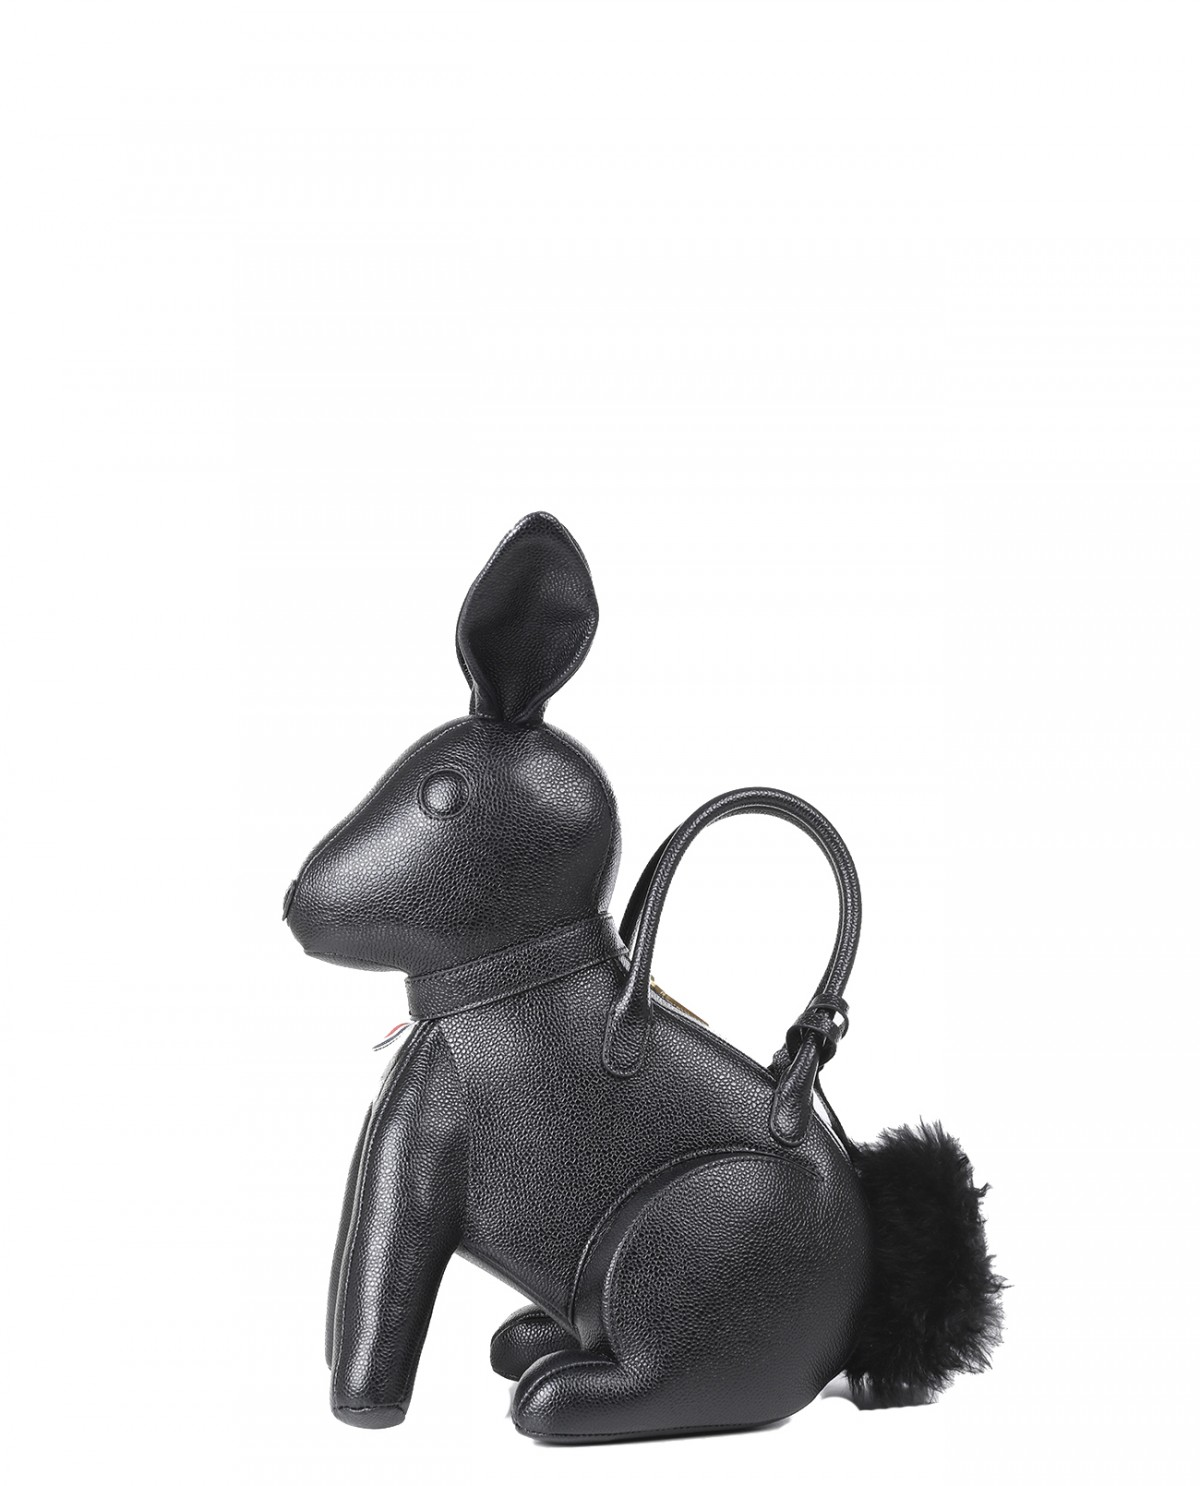 Thom Browne black Rabbit bag